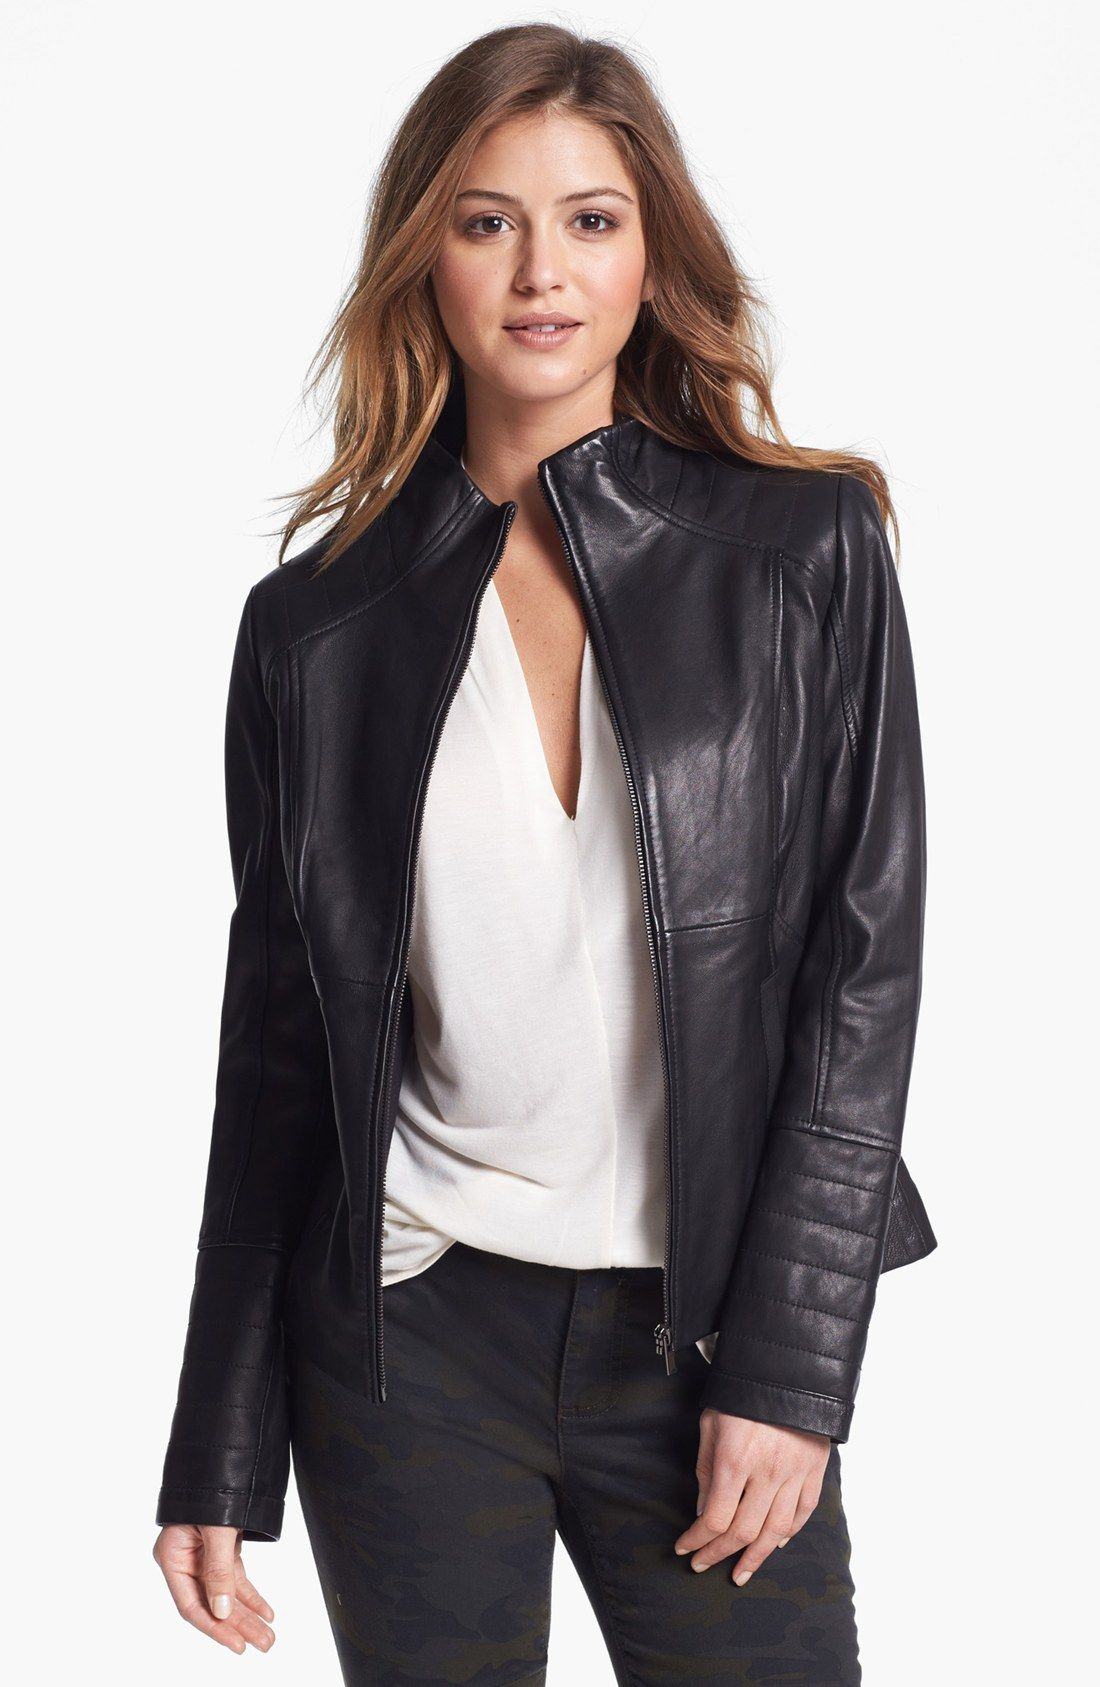 buy women's sexy leather jackets, black / brown in usa, uk